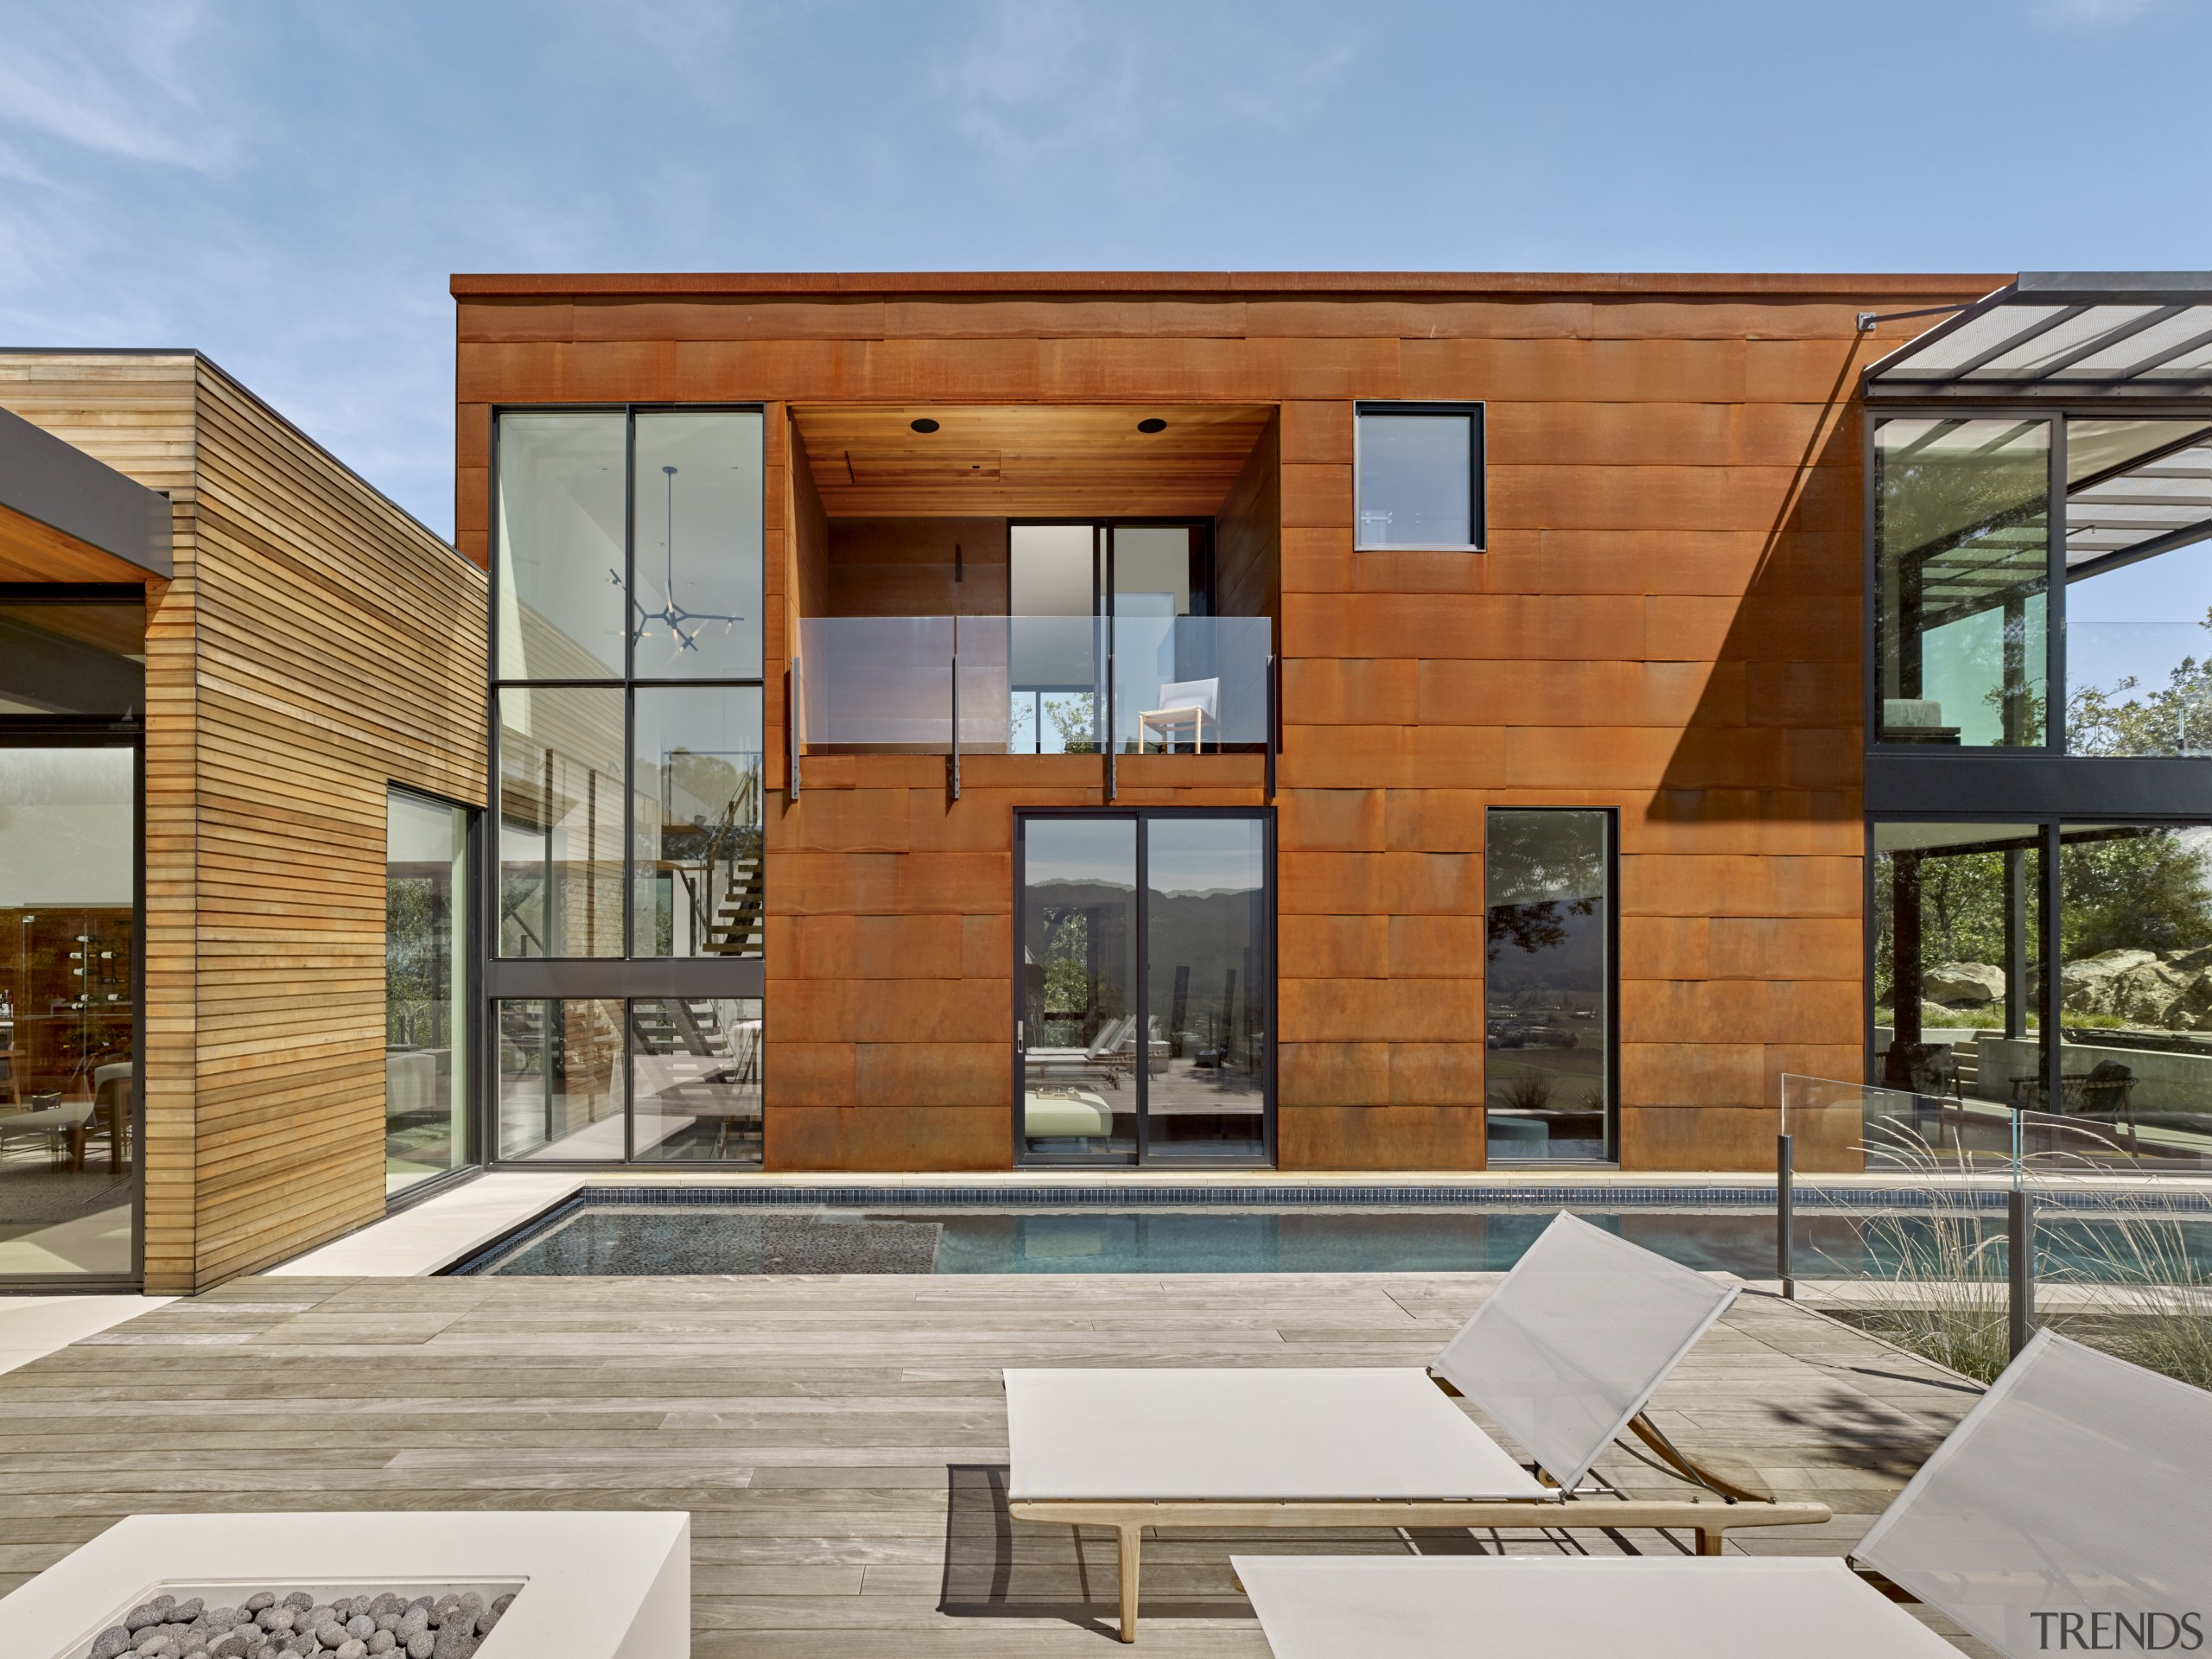 In contrast to the wood box that contains architecture, design, facade, home, house, timber cladding, pool, de Vito Architecture + Construction